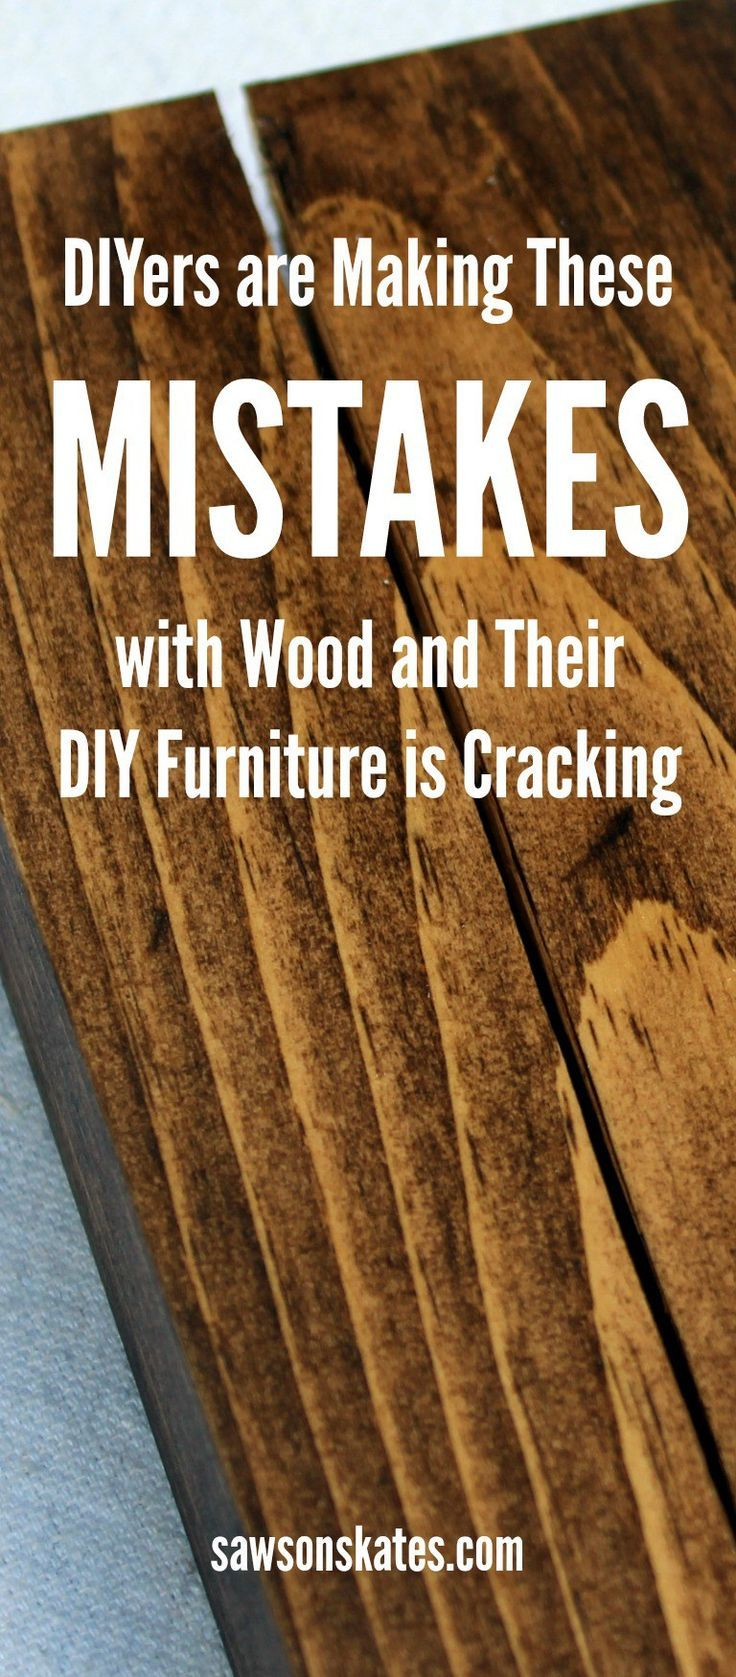 Diy Furniture Mistakes With Wood Can Cause Your Diy Furniture To Crack Diy